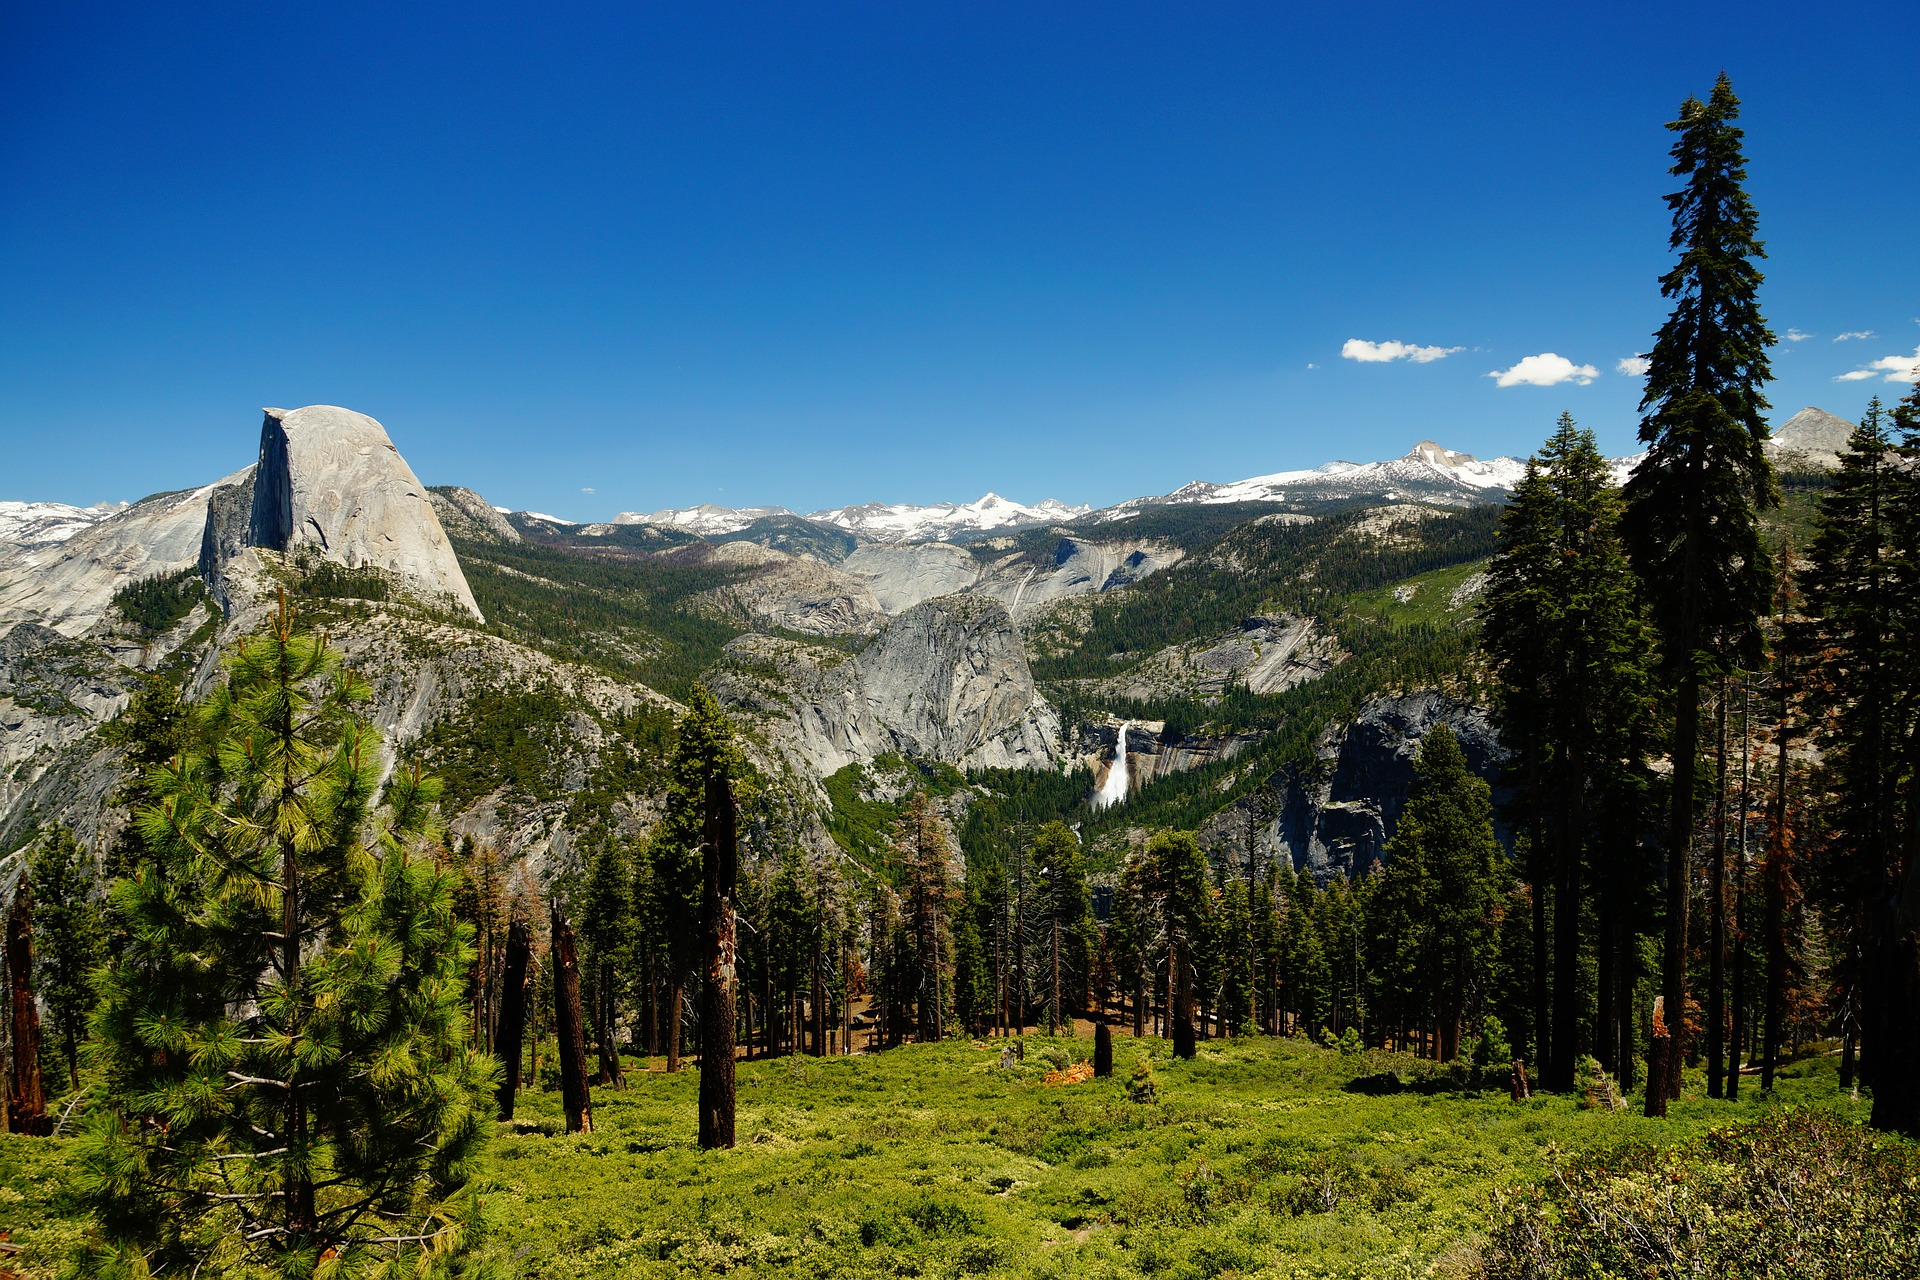 Half Dome (left) and waterfall at Yosemite National Park, California, USA